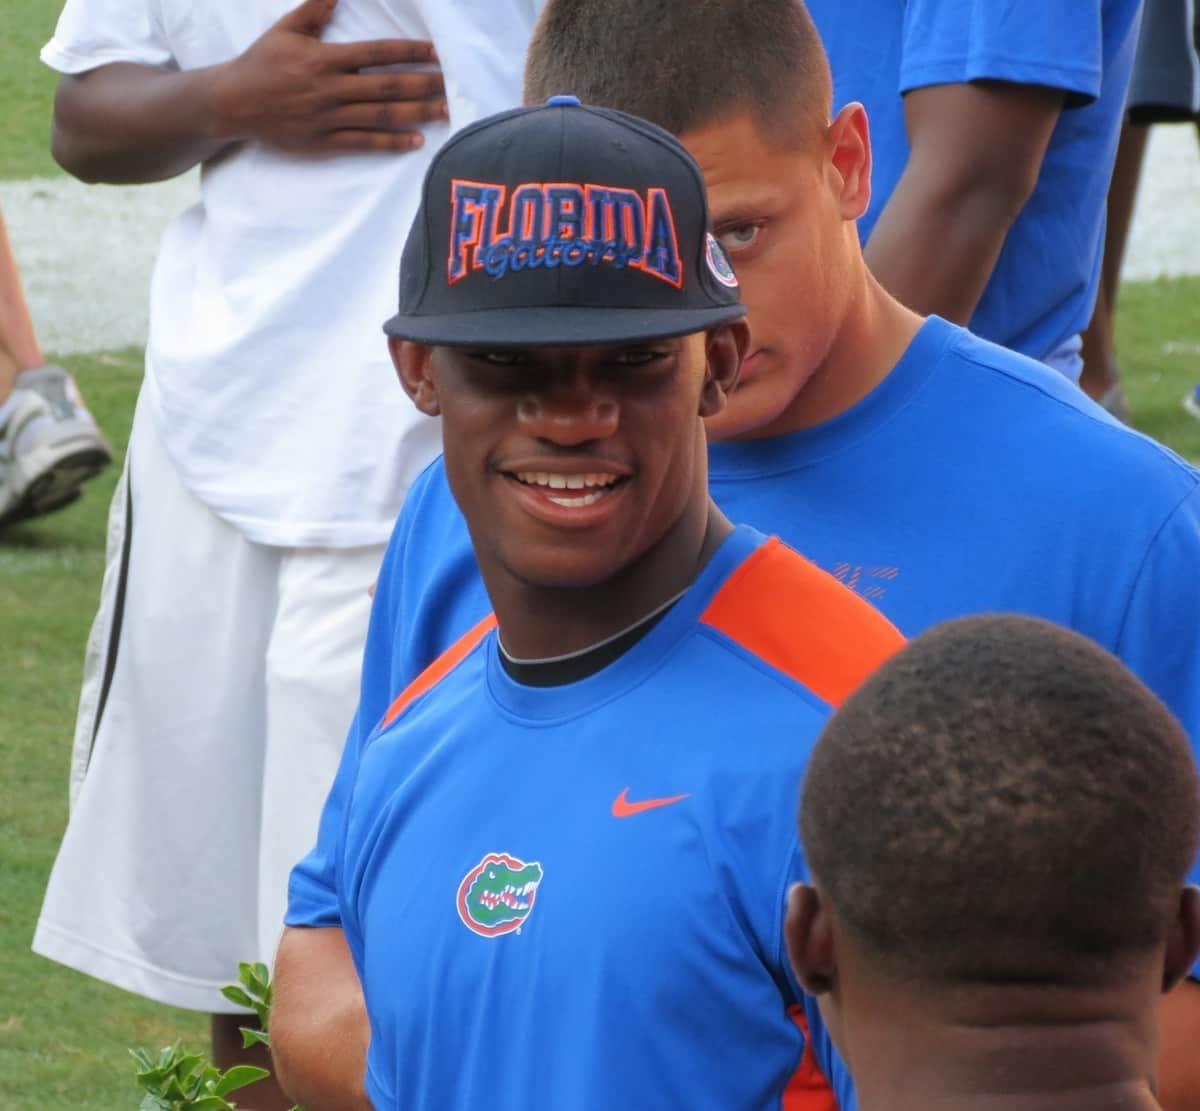 Gators safety signee Nick Washington helped recruit other 2013 prospects for Florida's class, including Ahmad Fulwood and Marcell Harris. / Gator Country photo by Mike Capshaw